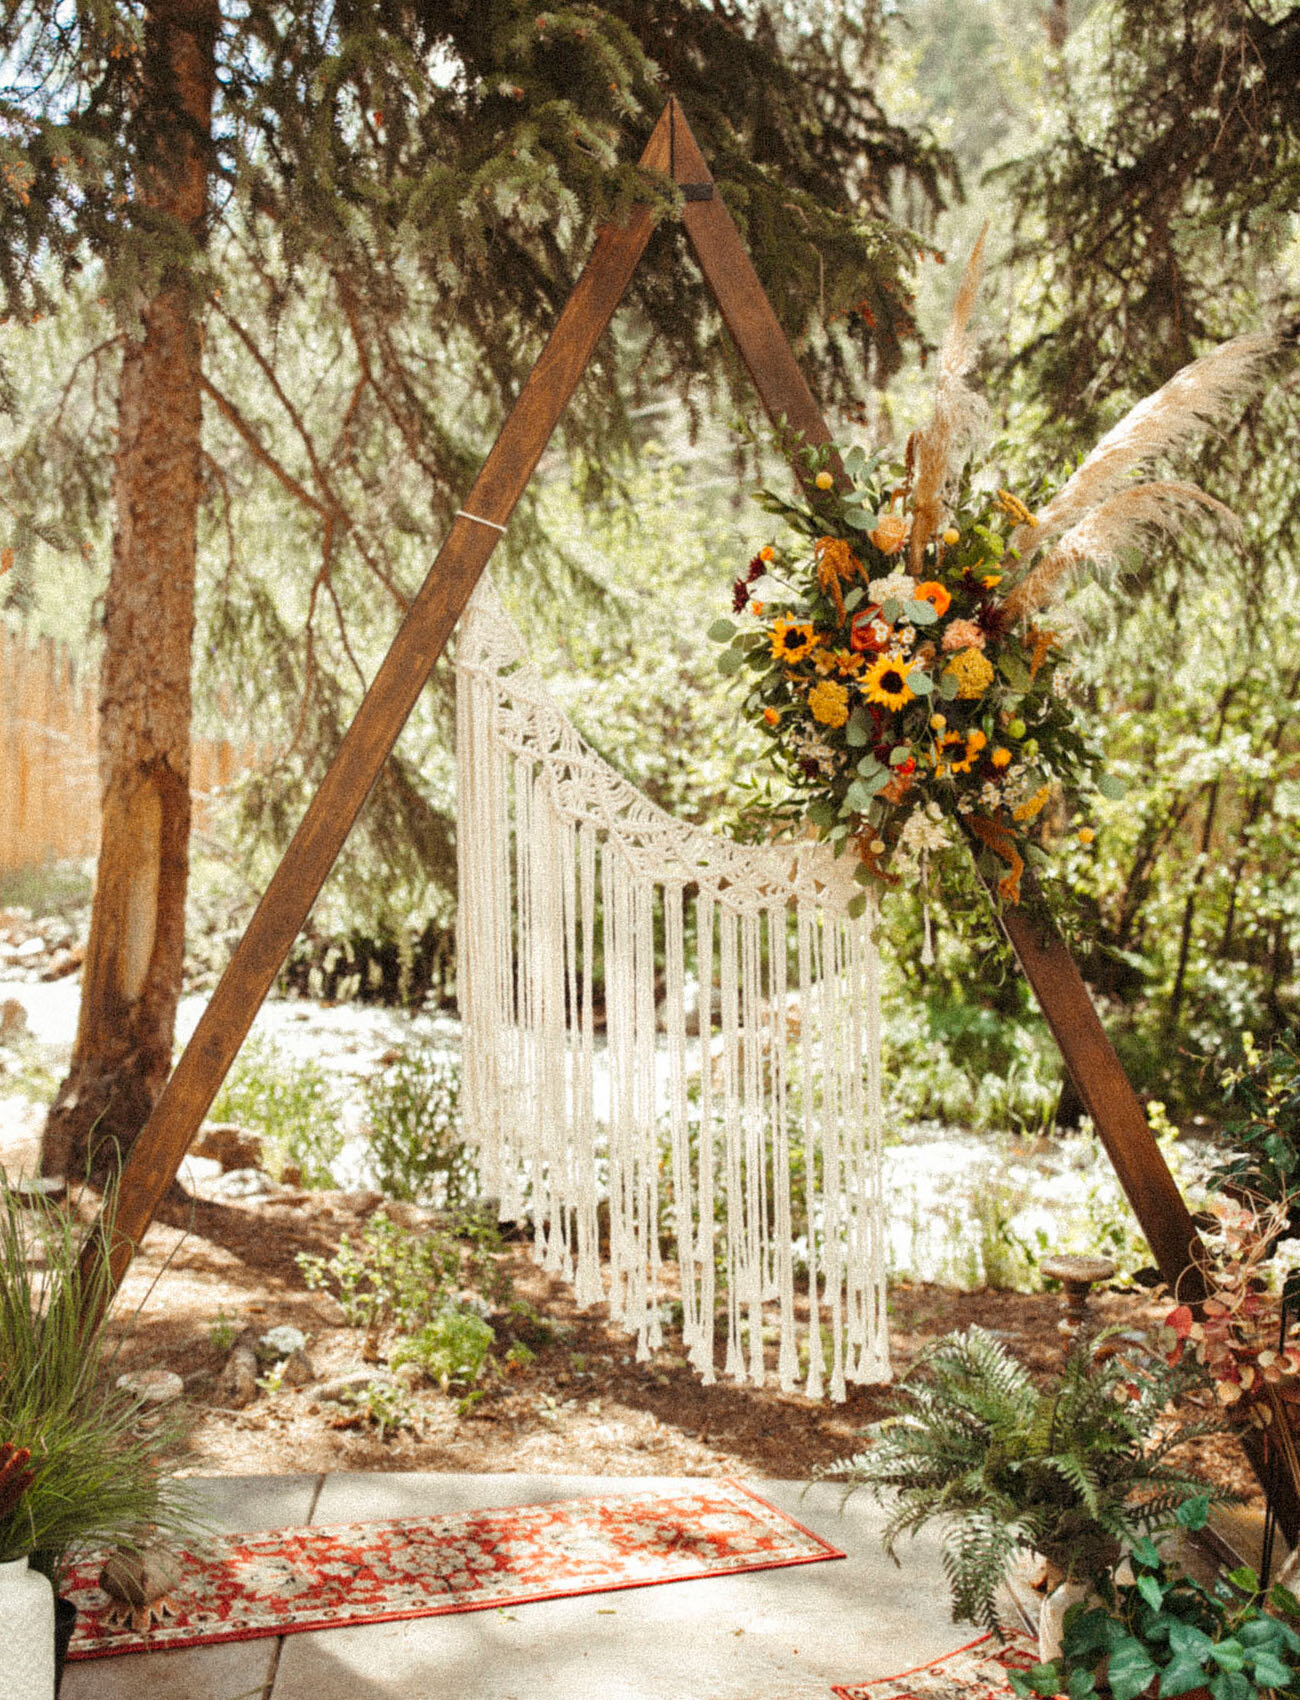 Among The Wildflowers: A Warm Boho Wedding in Idaho Springs, CO from Green Wedding Shoes